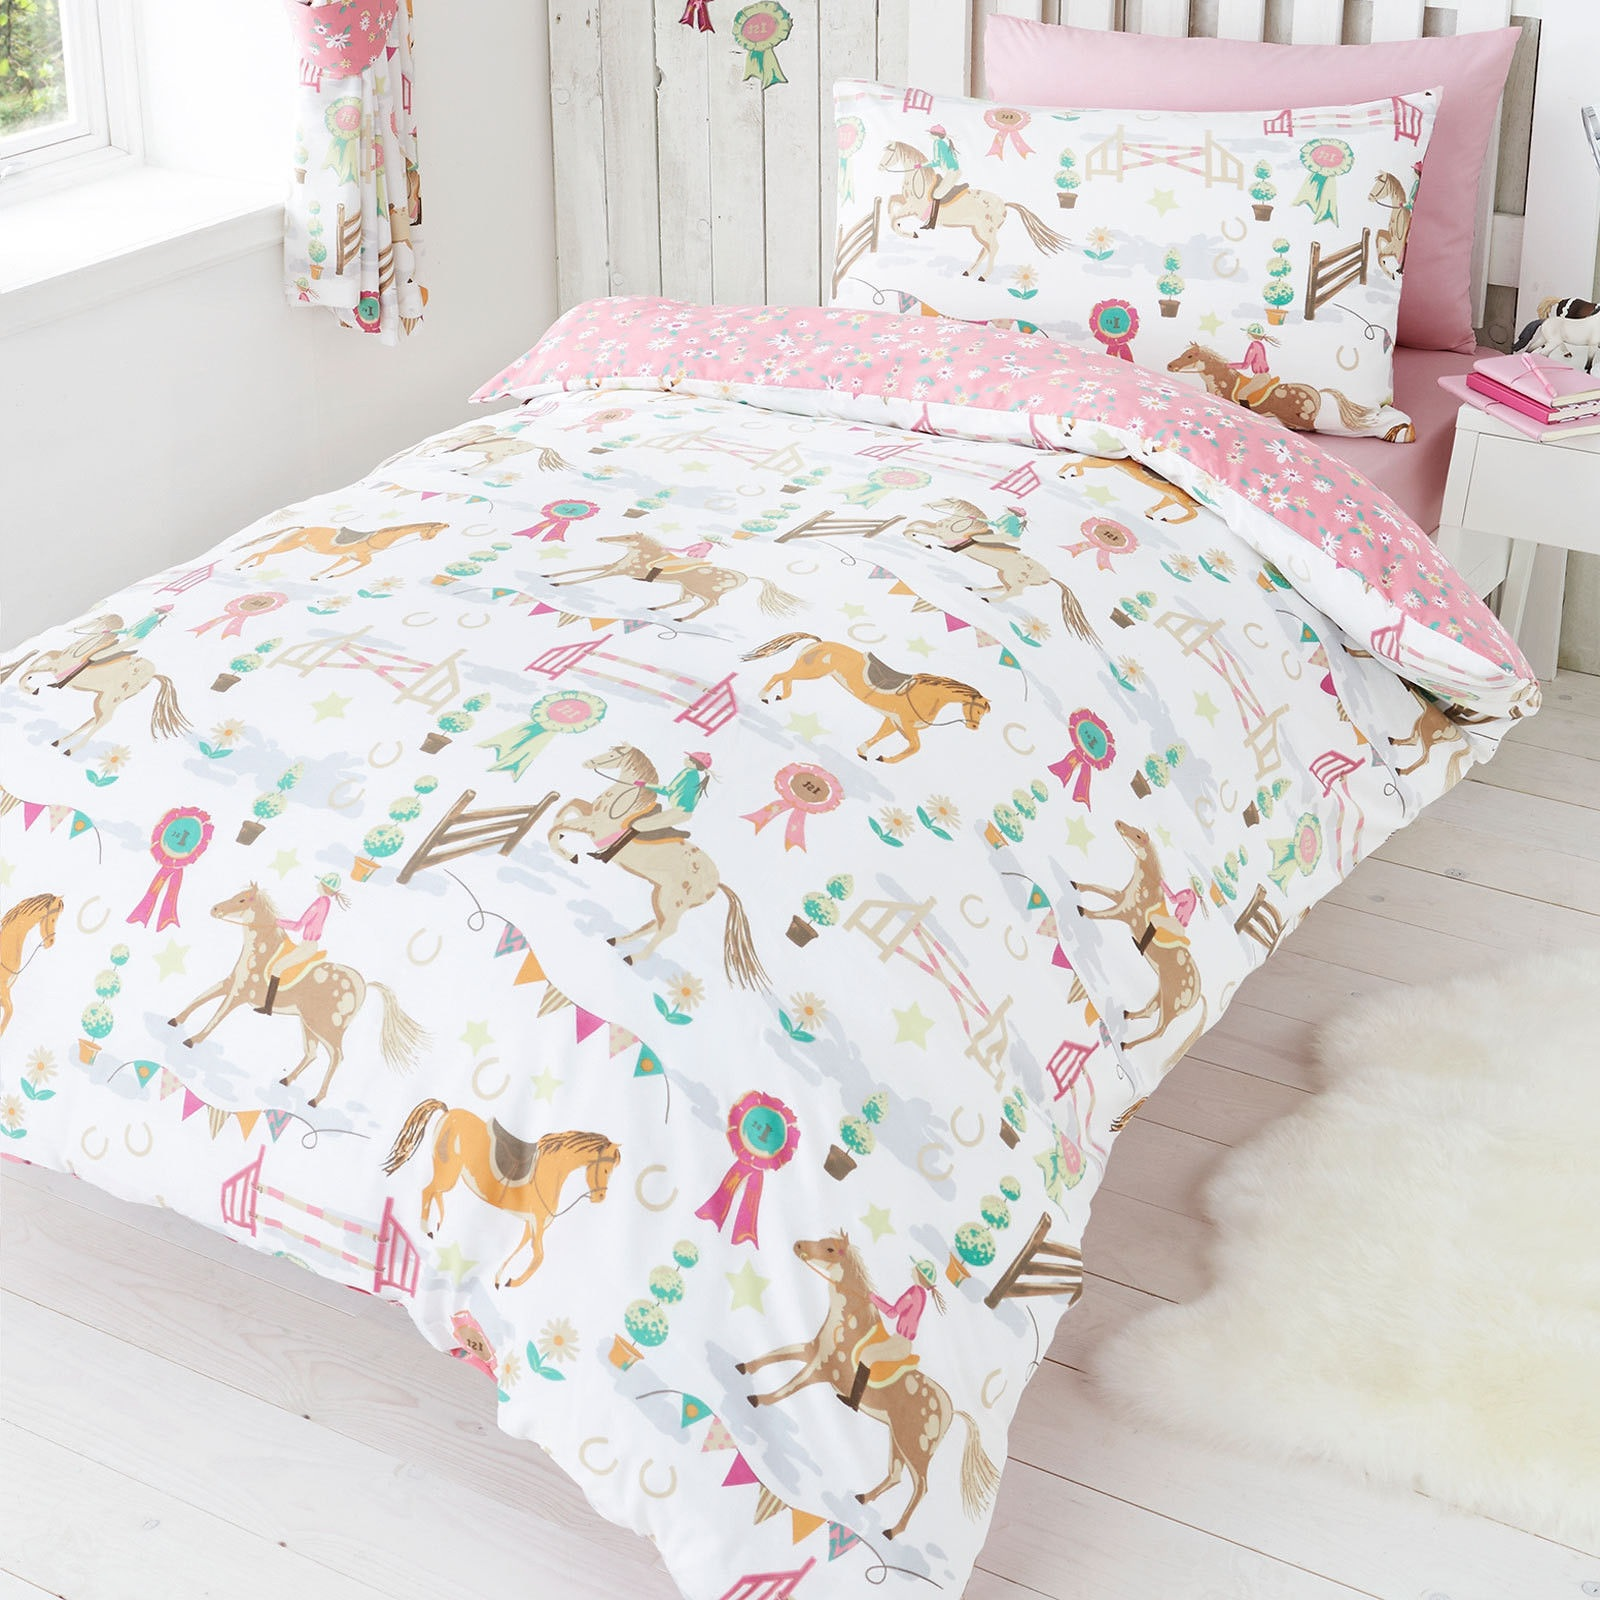 Girls Bedding Horse Pony Jumping Show Time Duvet Quilt Cover Daisy Prize